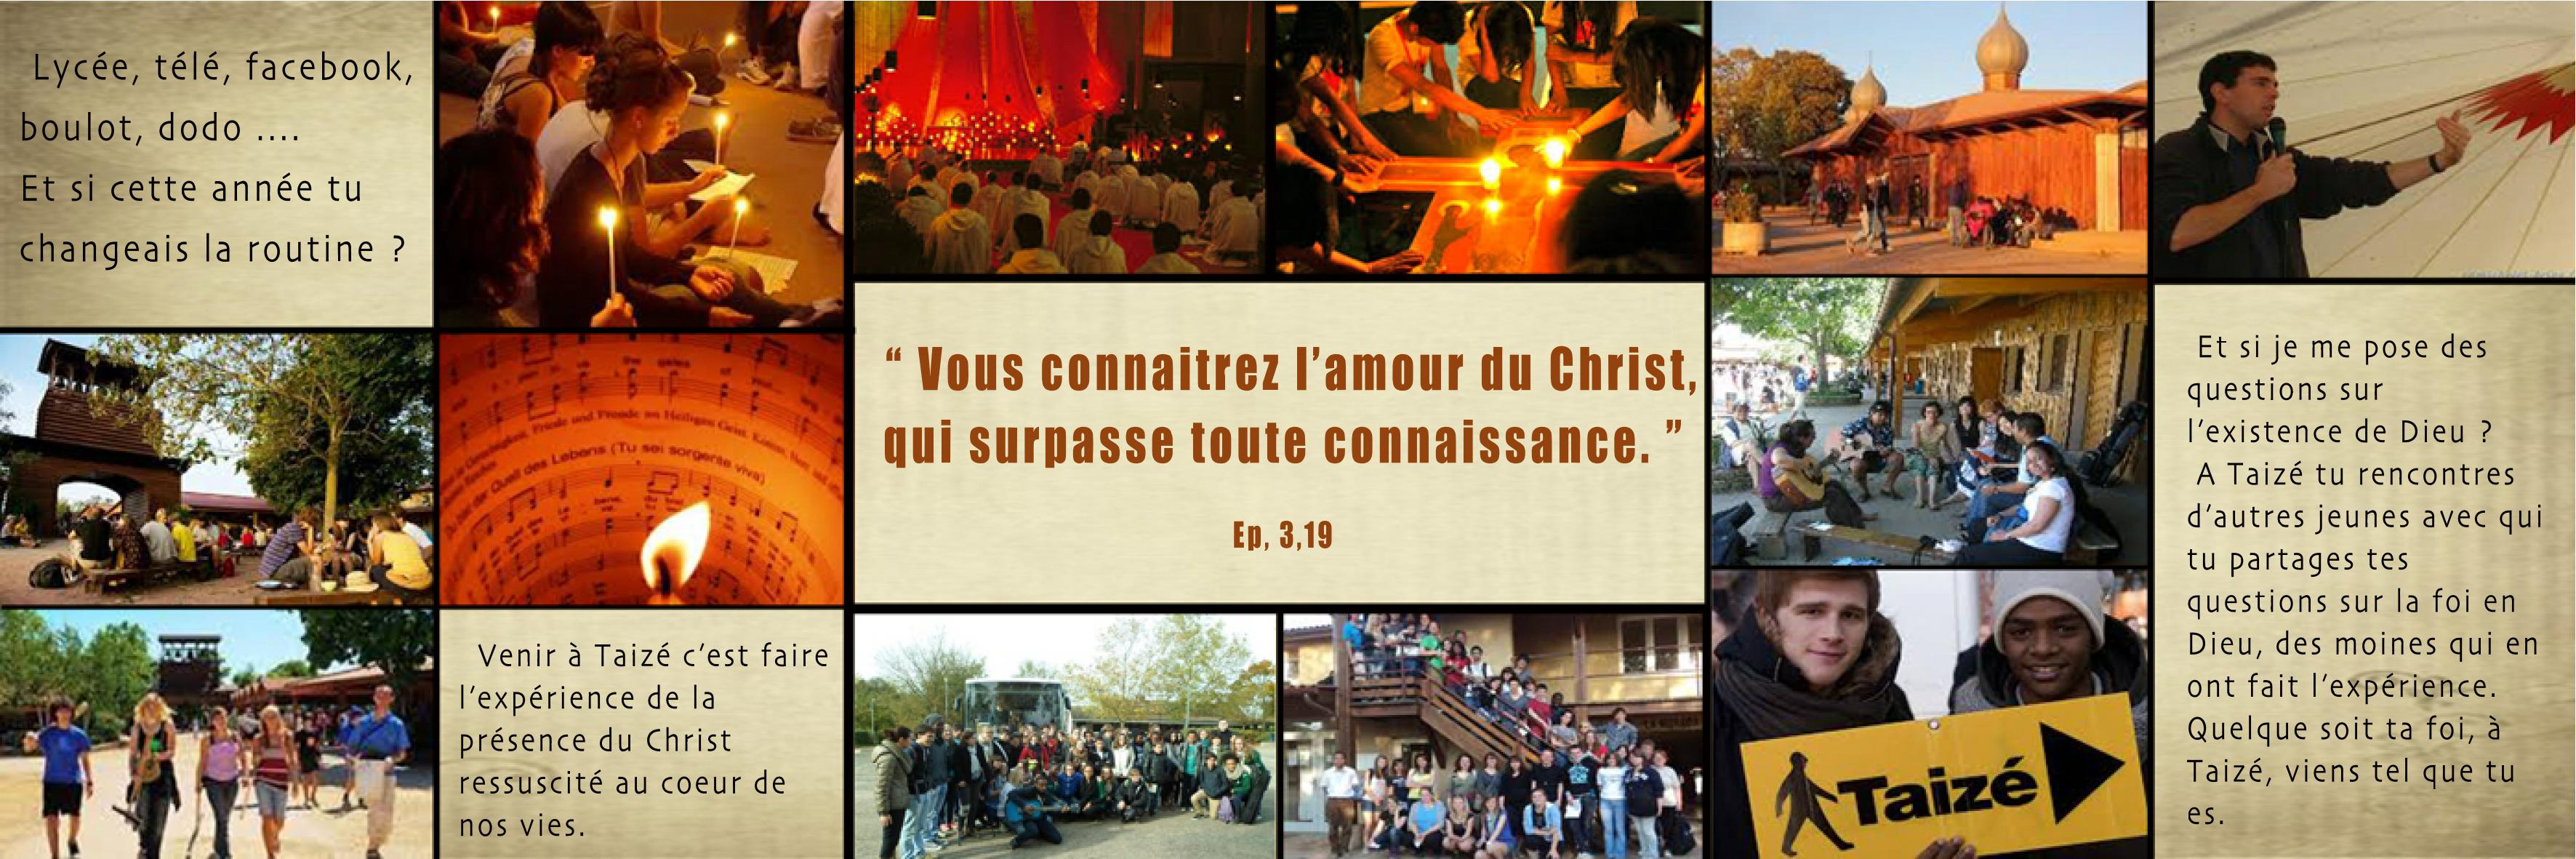 taizé 2017 flyer